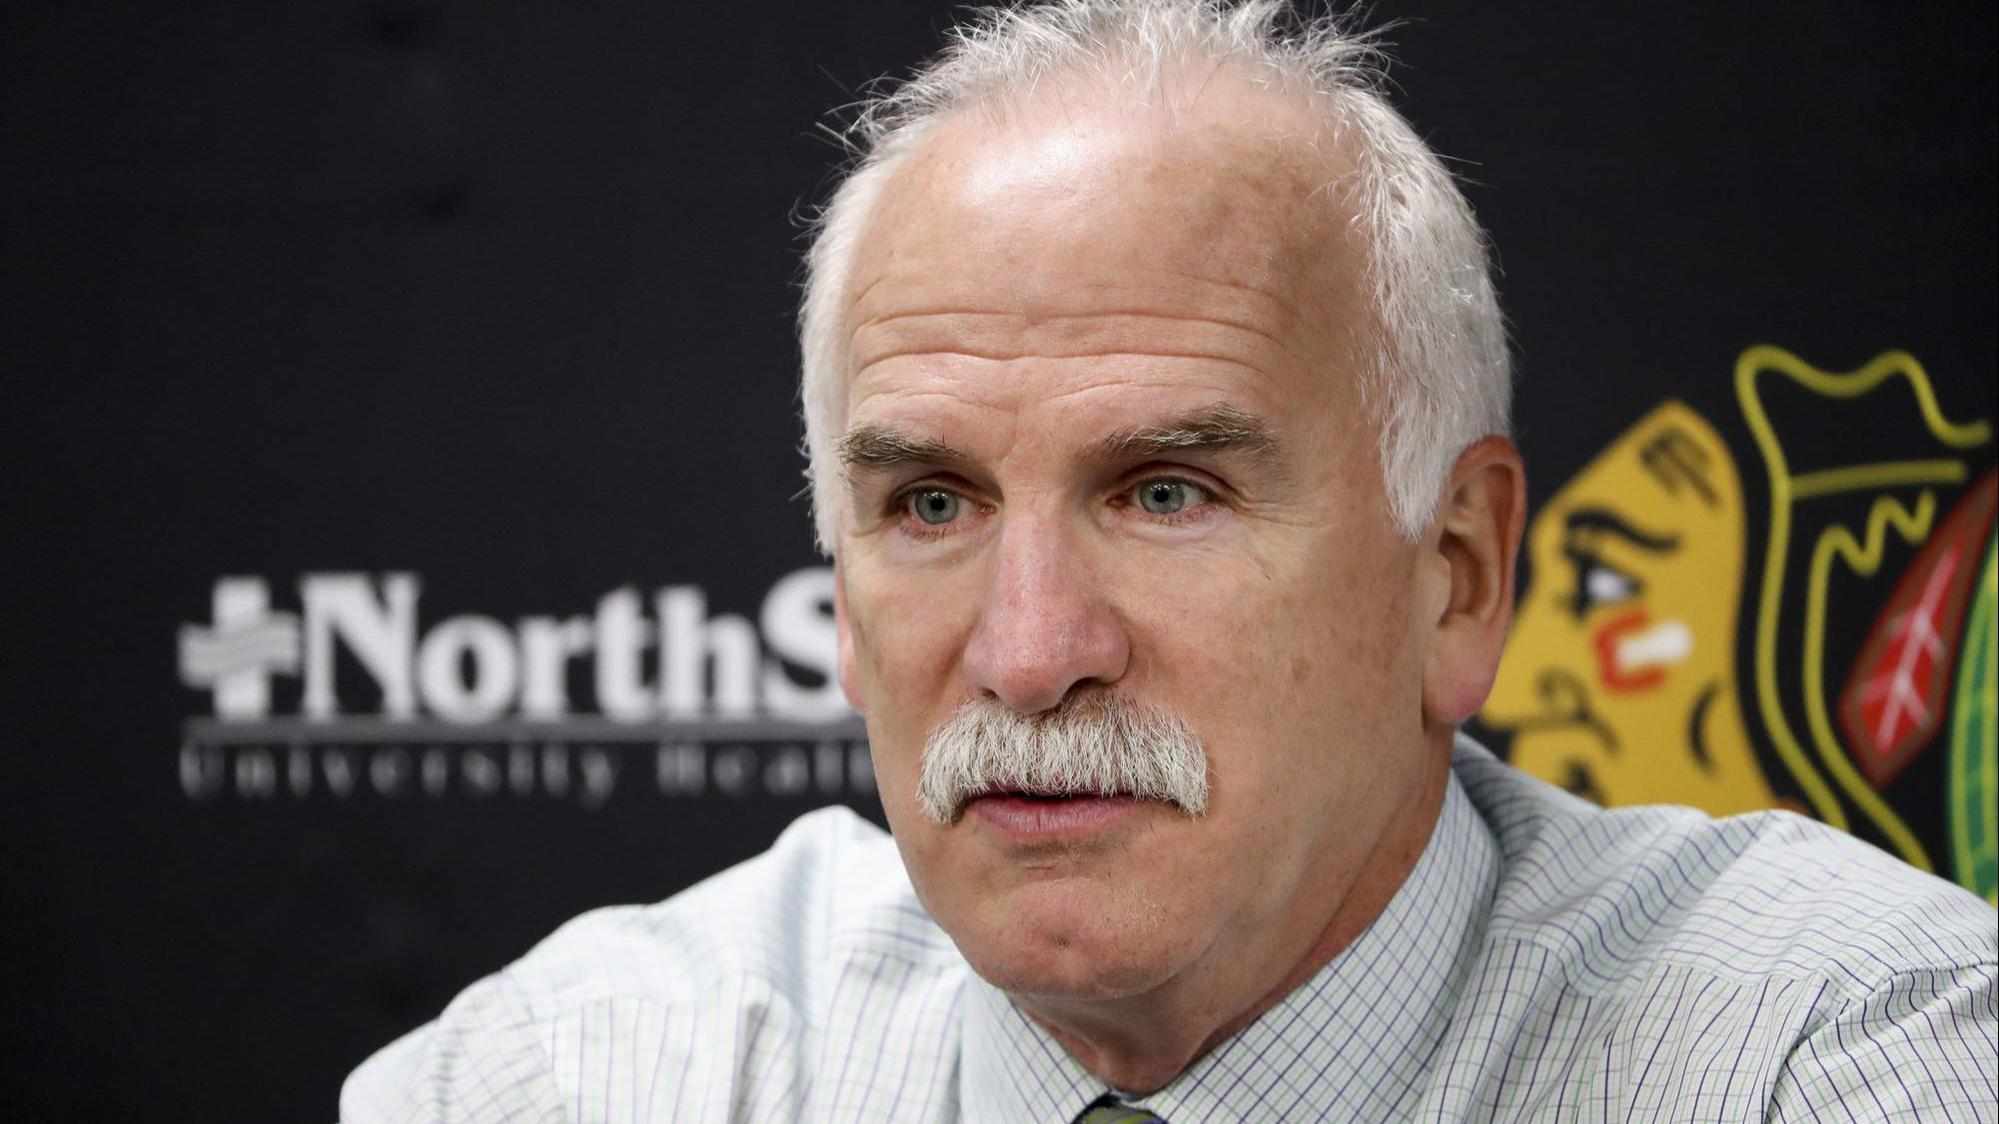 Former Blackhawks coach Joel Quenneville breaks his silence and eyes return to coaching sooner than later, but 'no hurry'